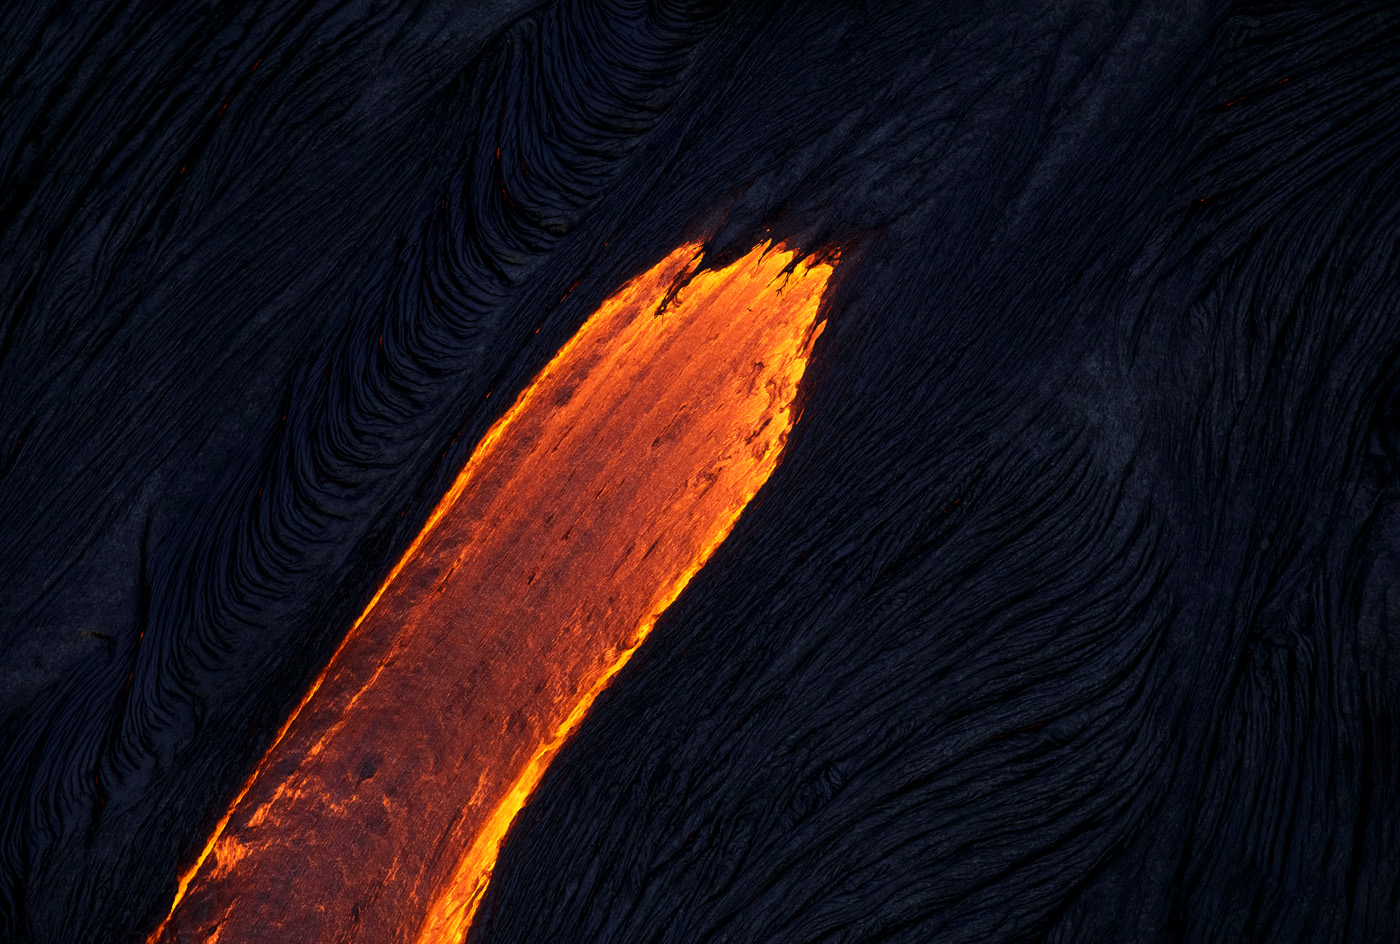 The lava surface flows look like painted brush-strokes on the dark earth